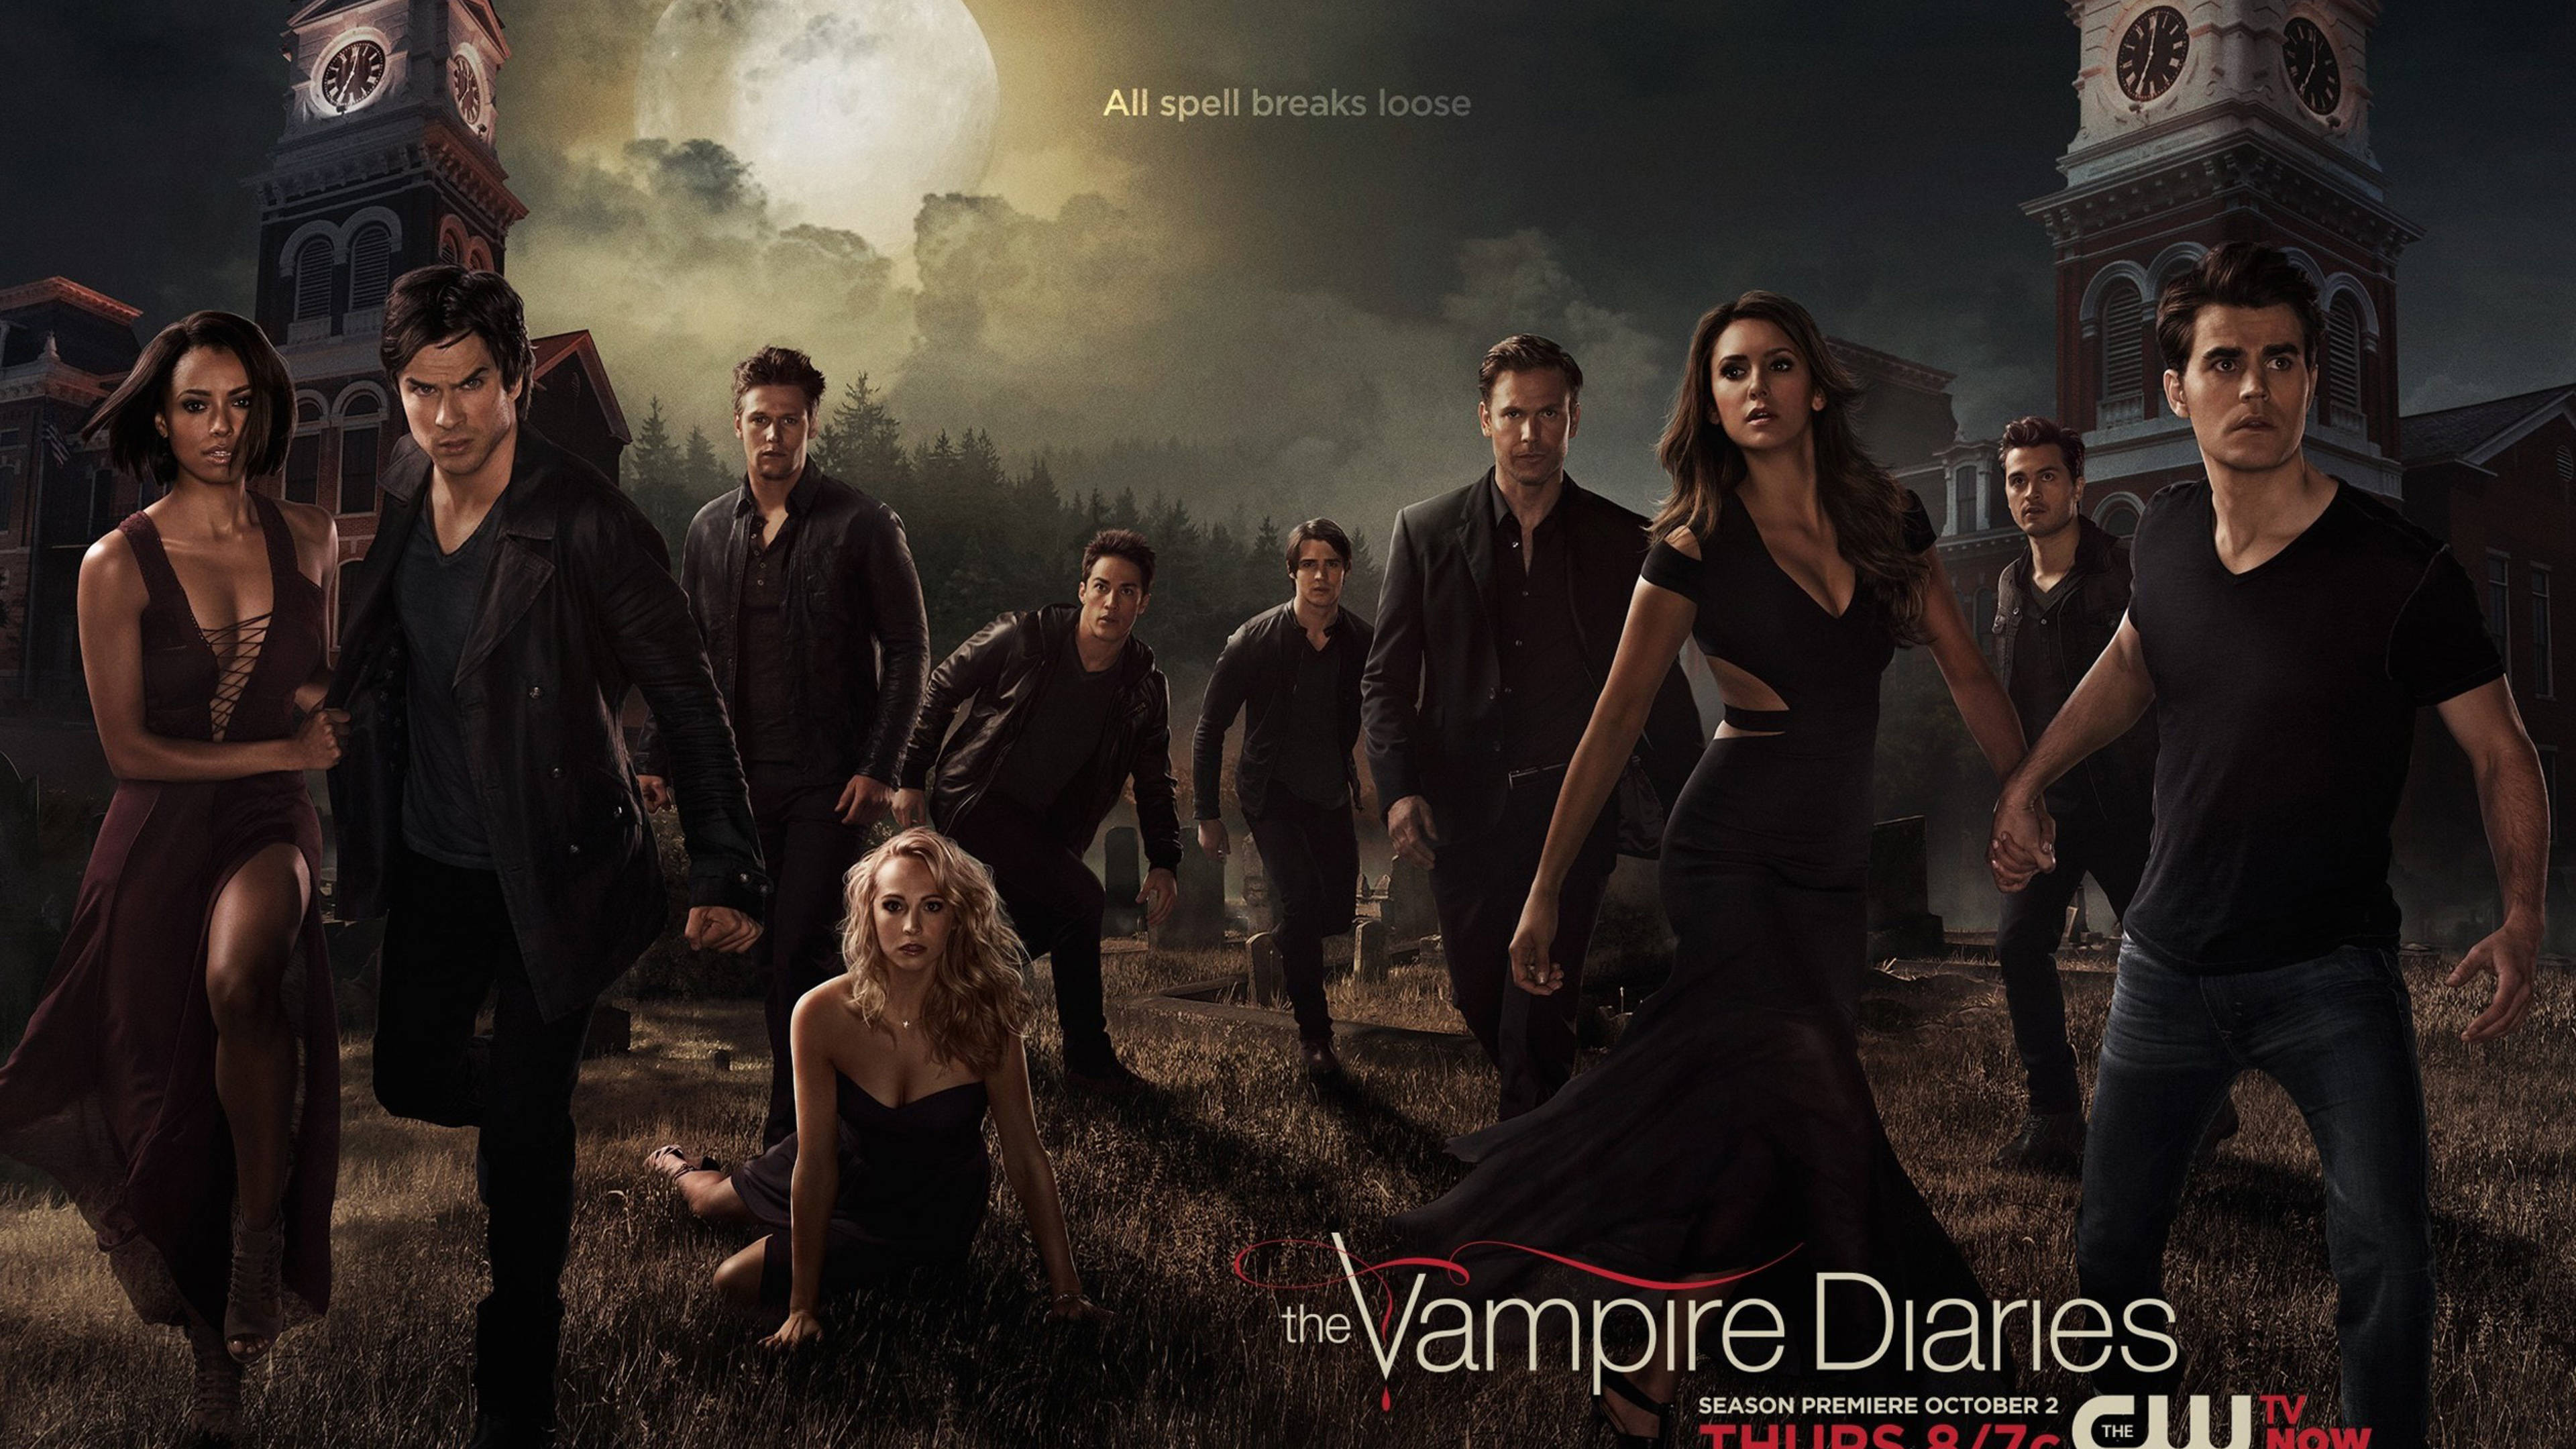 http://hdqwalls.com/download/the-vampire-diaries-3840x2160.jpg